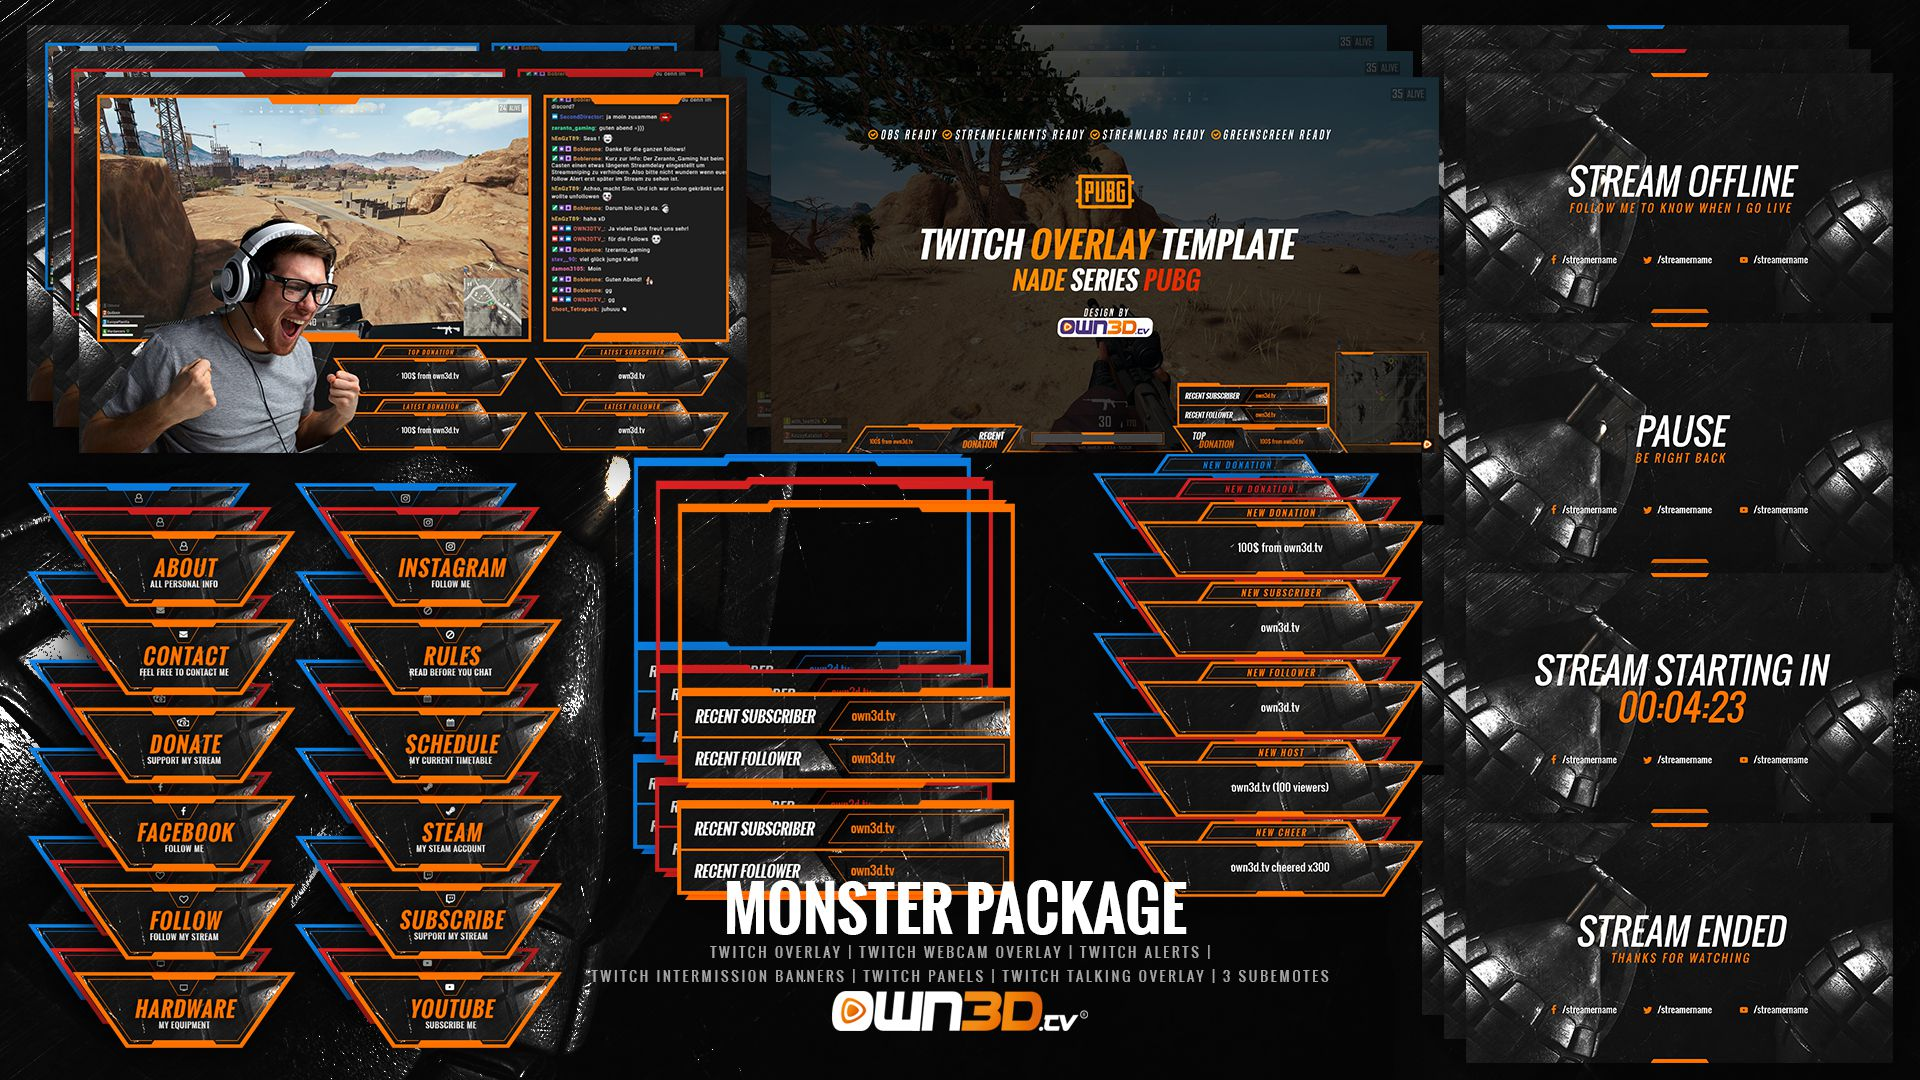 nade-series-ALL-twitch-overlay-package-03-monster.jpg